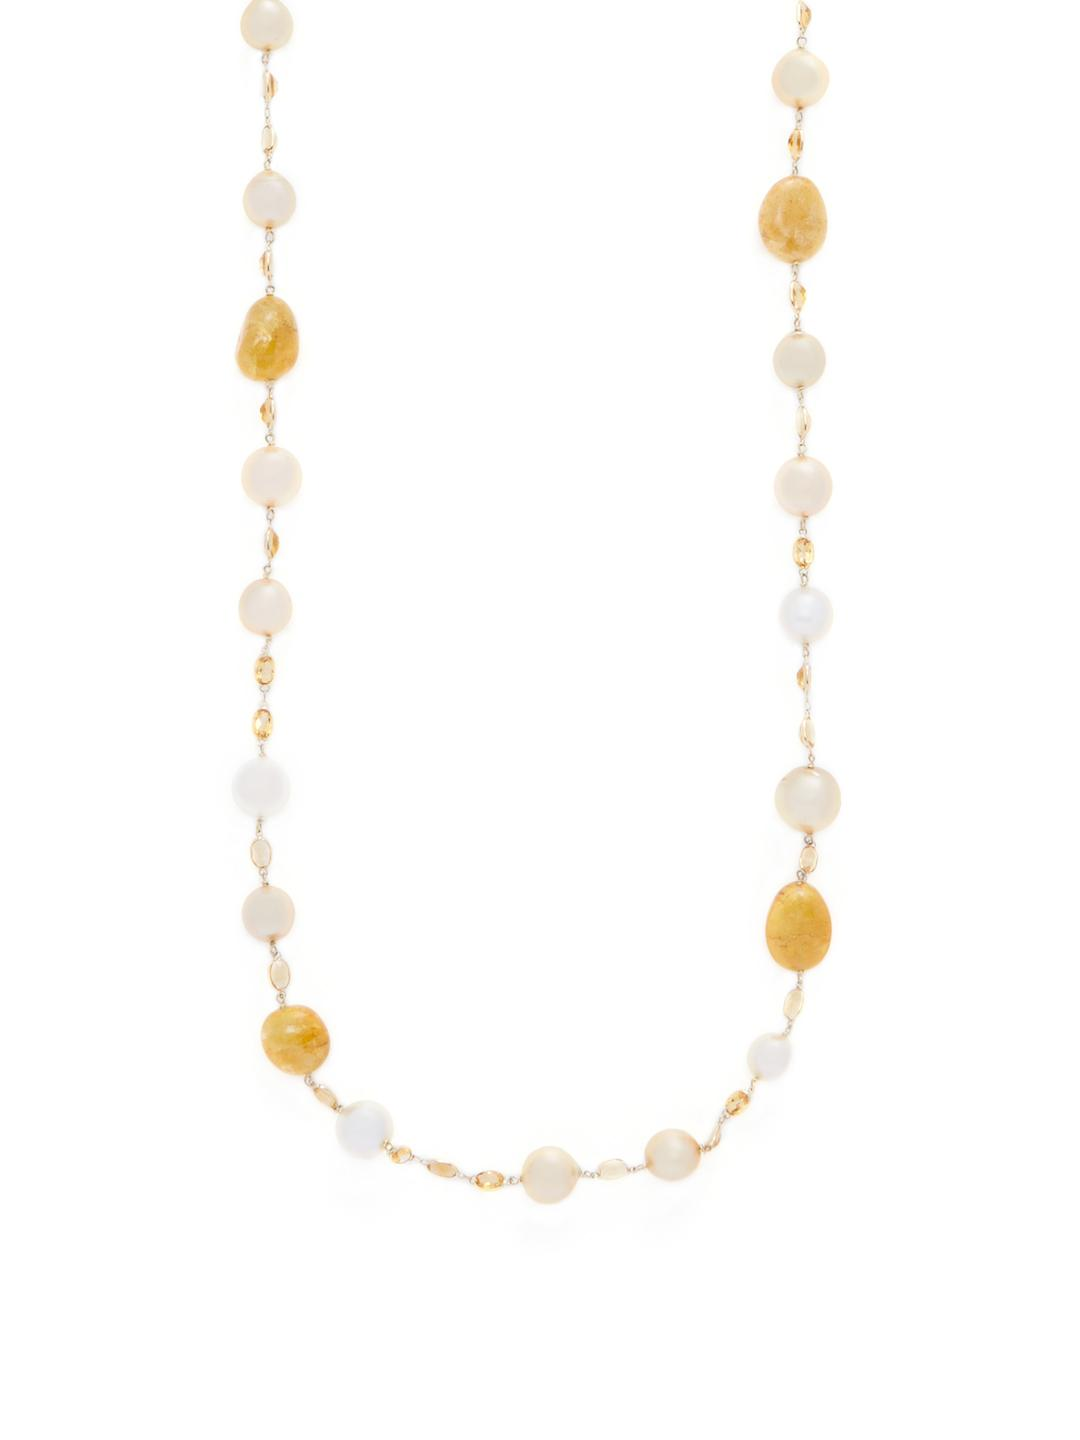 Belpearl 18k Golden South Sea Pearl Necklace w/ Citrine & Yellow Beryl 9UpHG6Kv